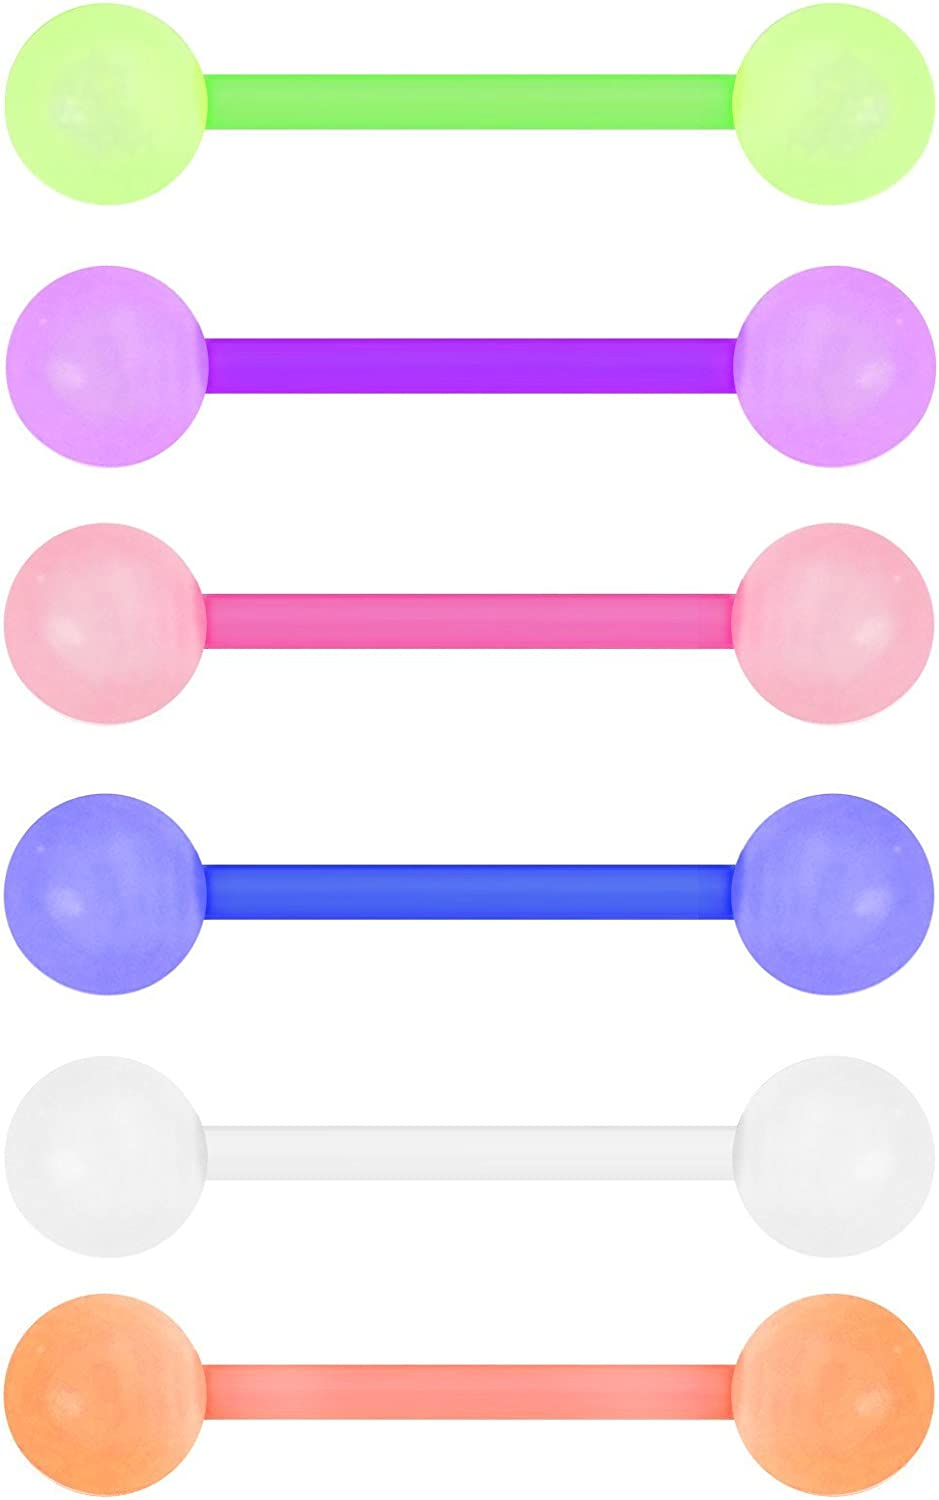 Forbidden Body Jewelry Lot of 6 Glow in The Dark Tongue Rings: 14G 16mm (5/8 Inch) Bioflex Tongue Ring Barbell Set